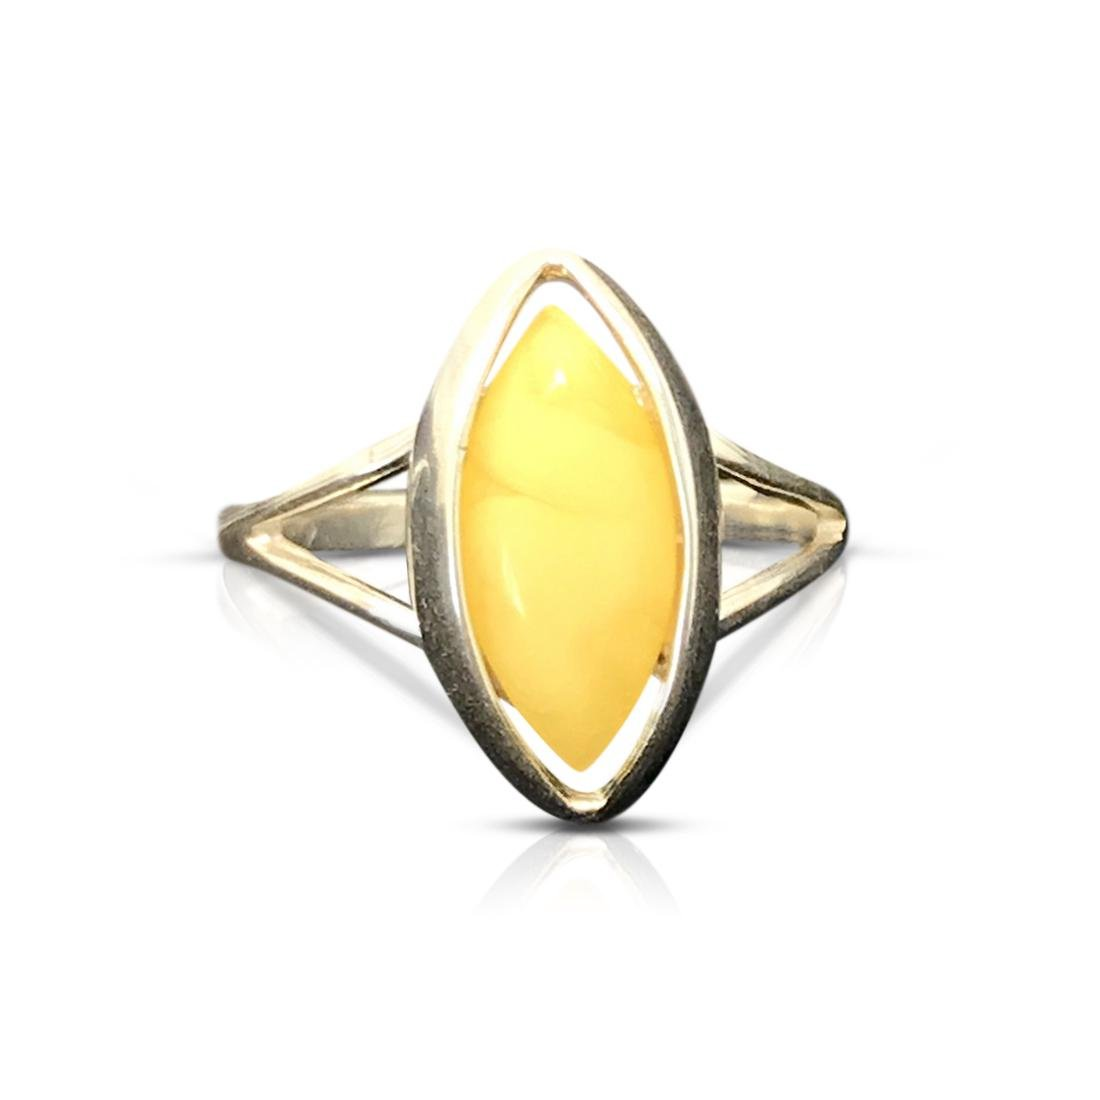 Sterling silver Baltic amber ring, sealed